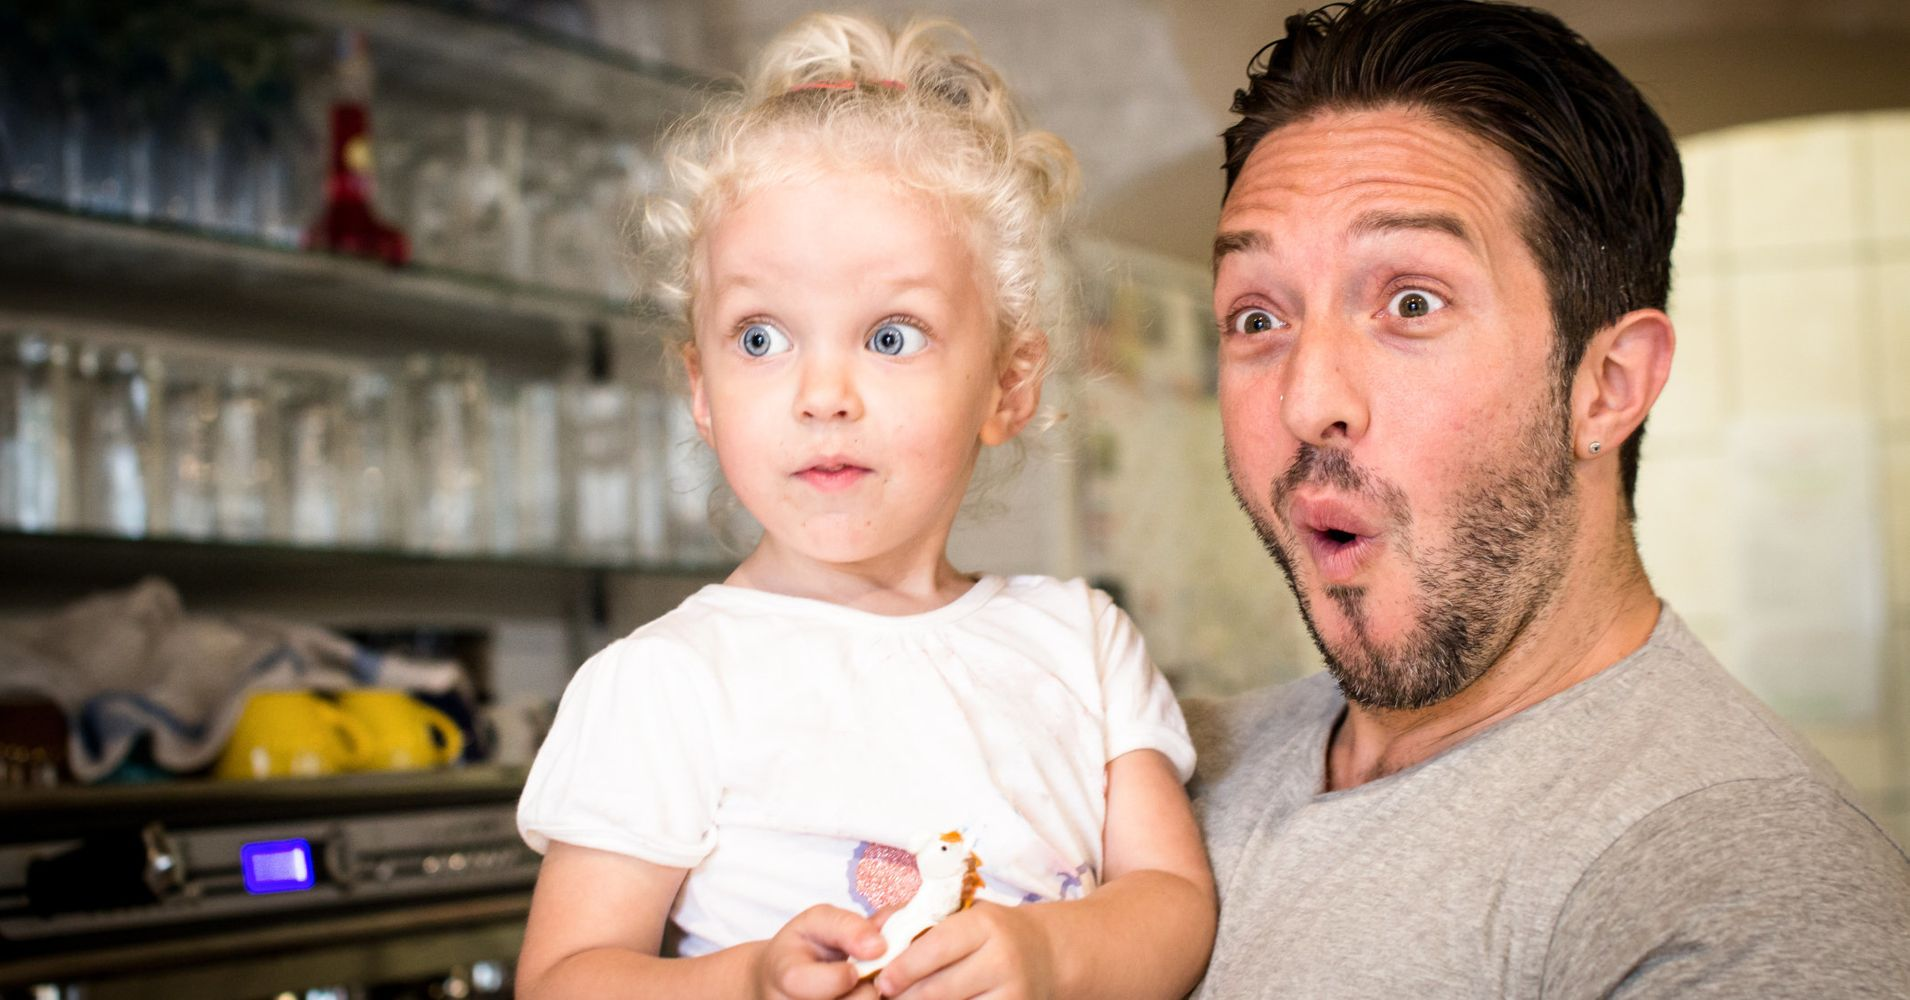 Dads Who Have This Whole Dad Thing Nailed Down HuffPost - 27 dads totally nailed whole parenting thing